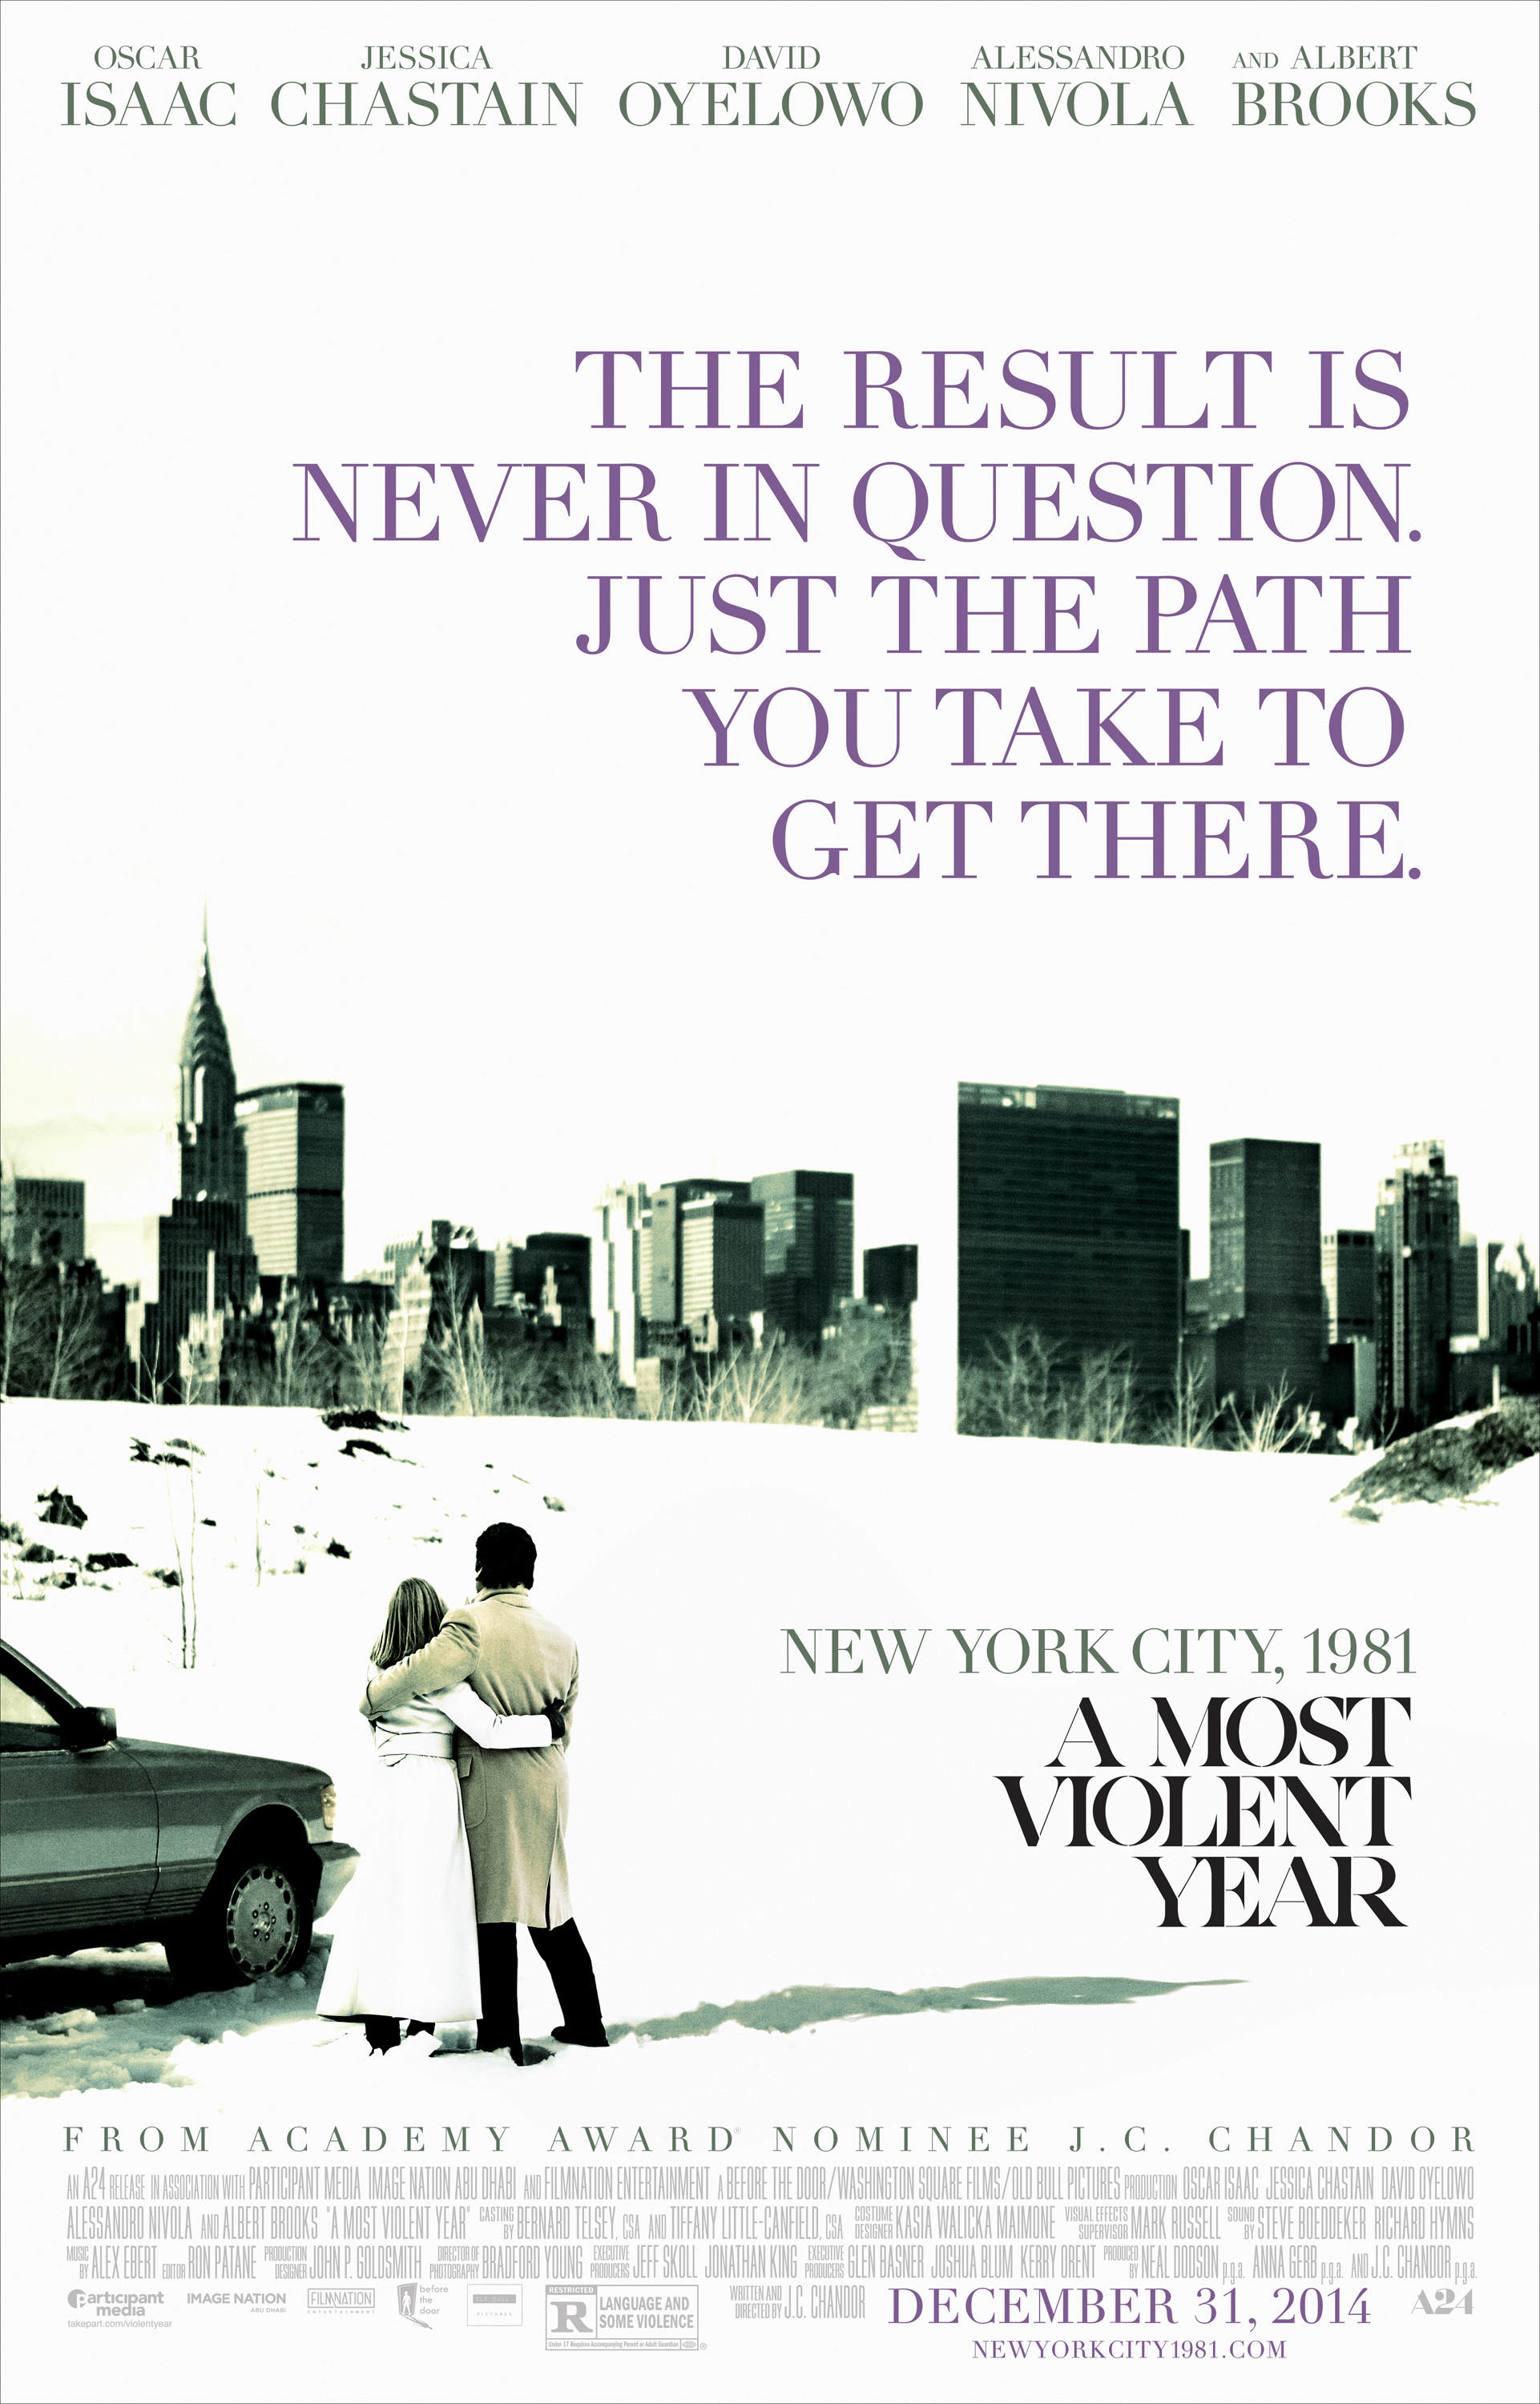 A MOST VIOLENT YEAR-Official Poster Banner XXLG-04NOVEMBRO2014